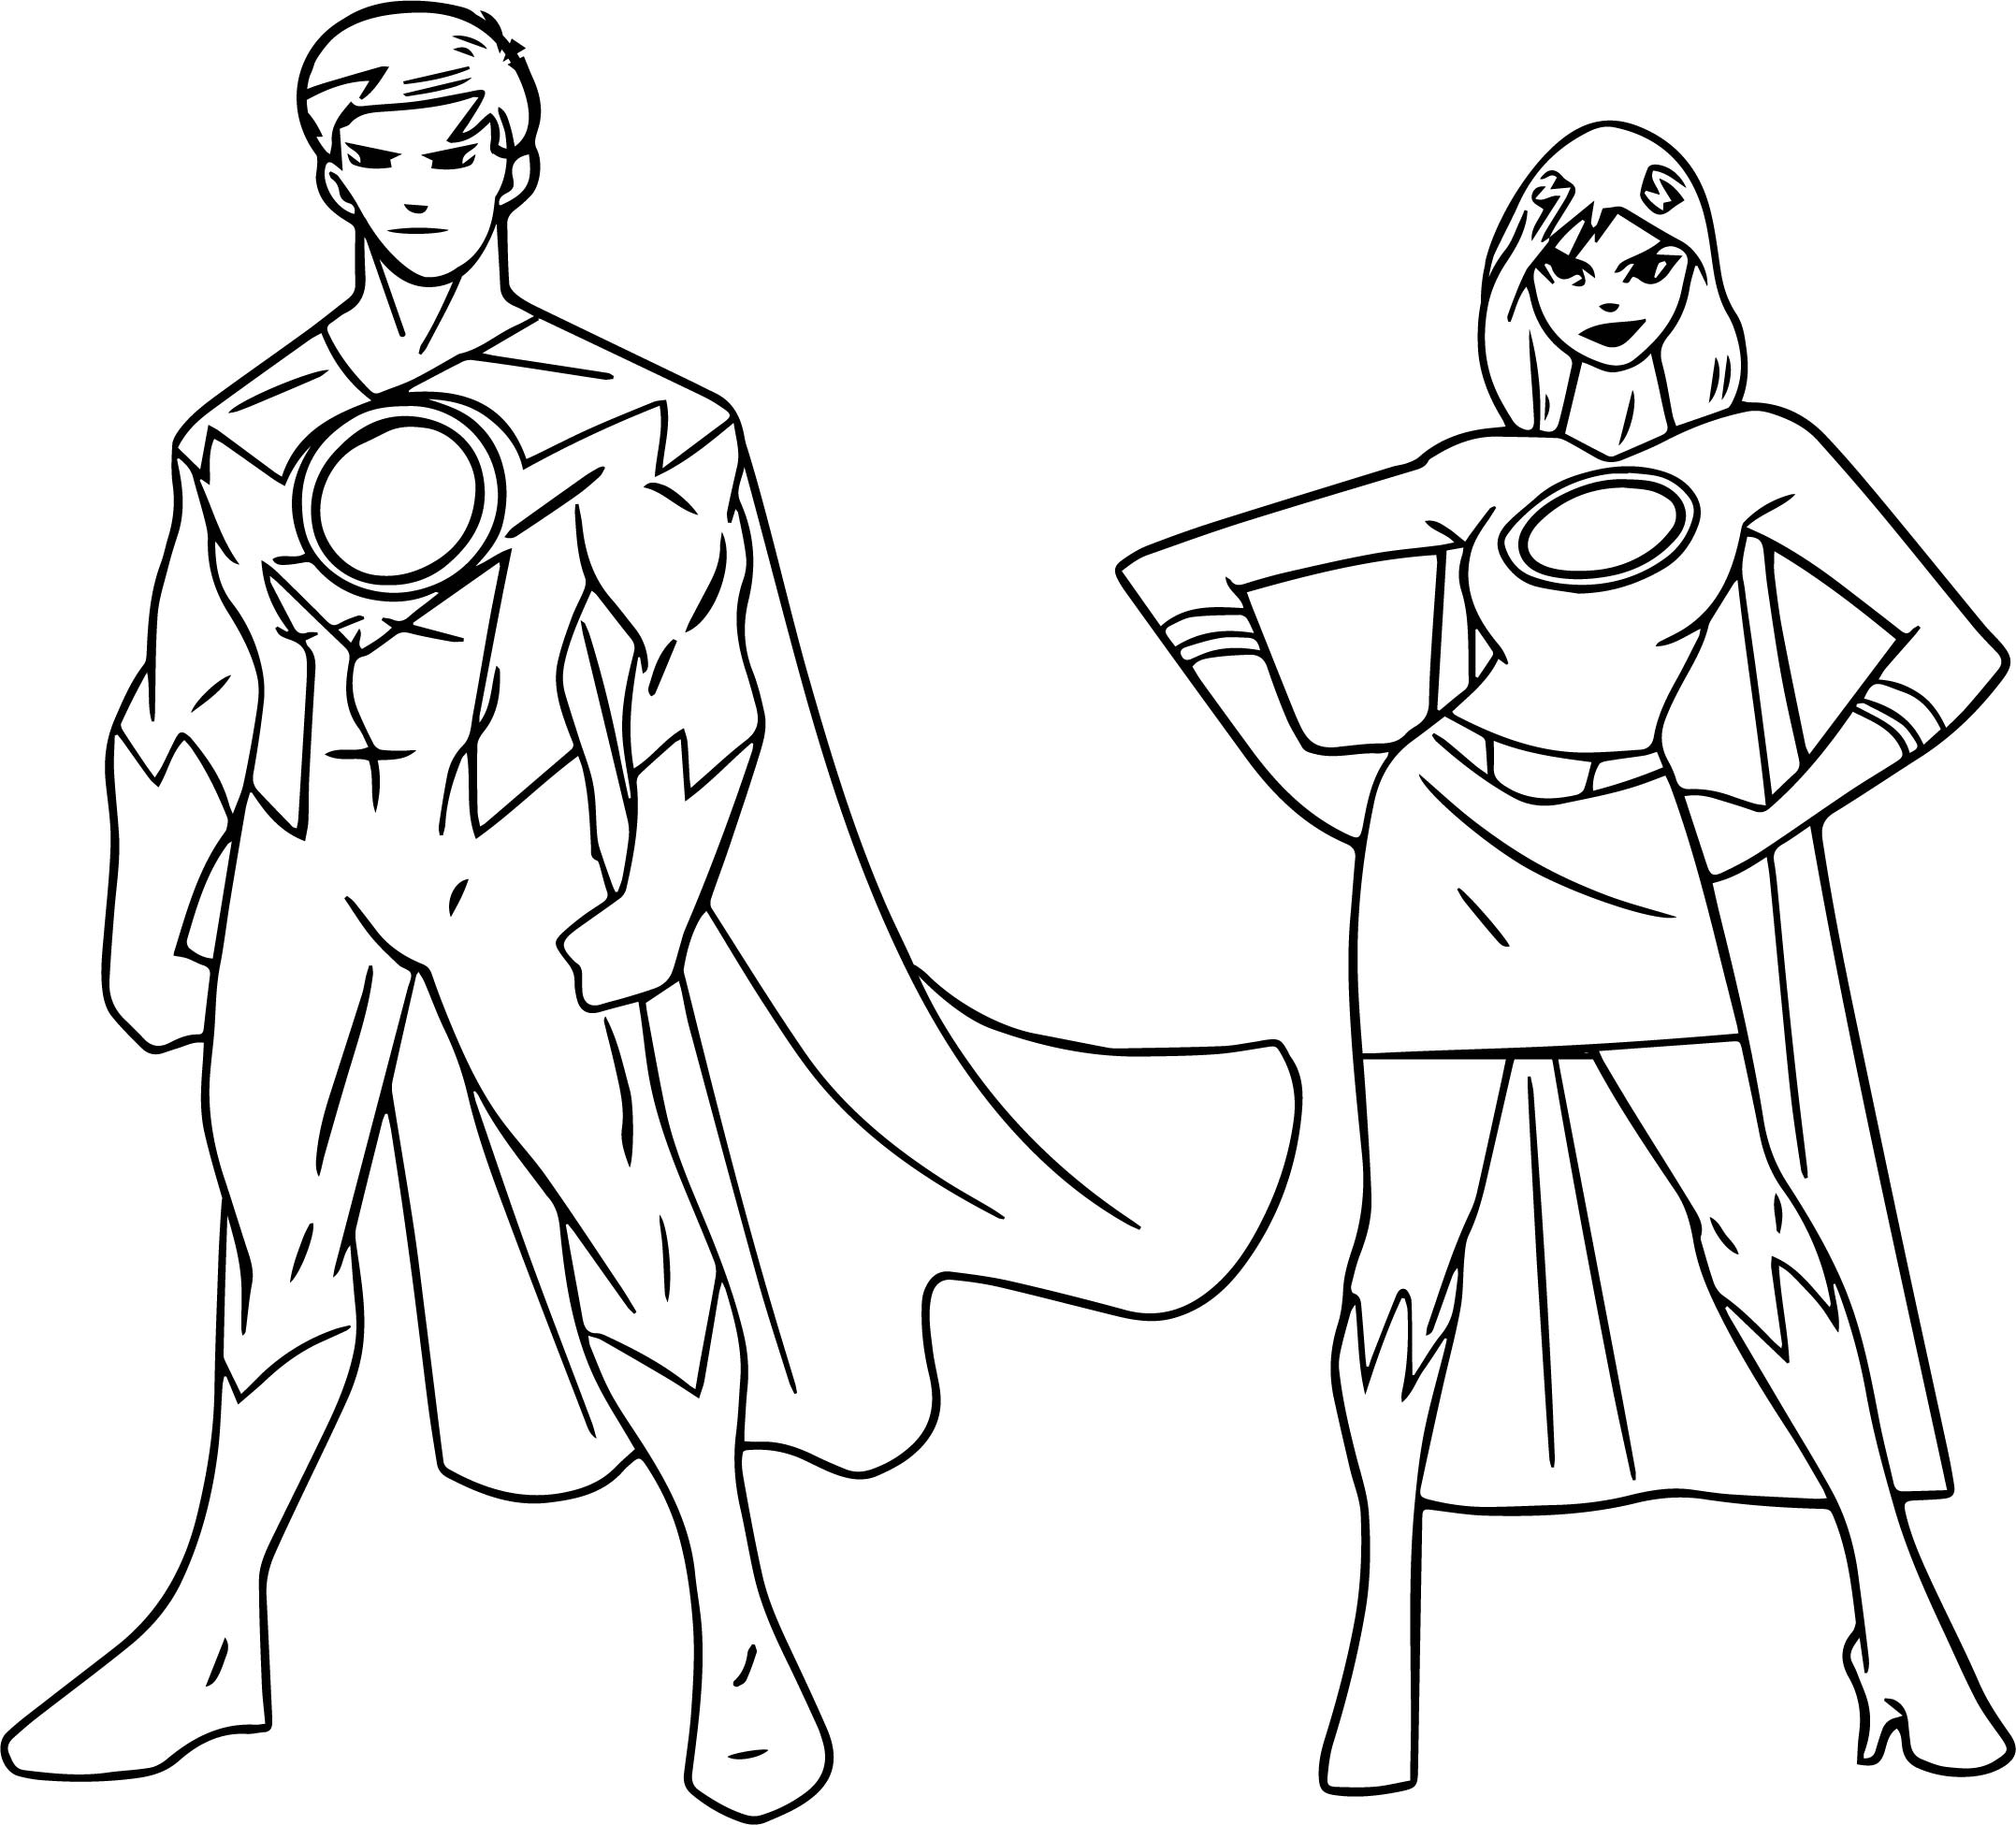 2155x1951 Superheros Coloring Pages Page 3 Of 7 Got Coloring Pages